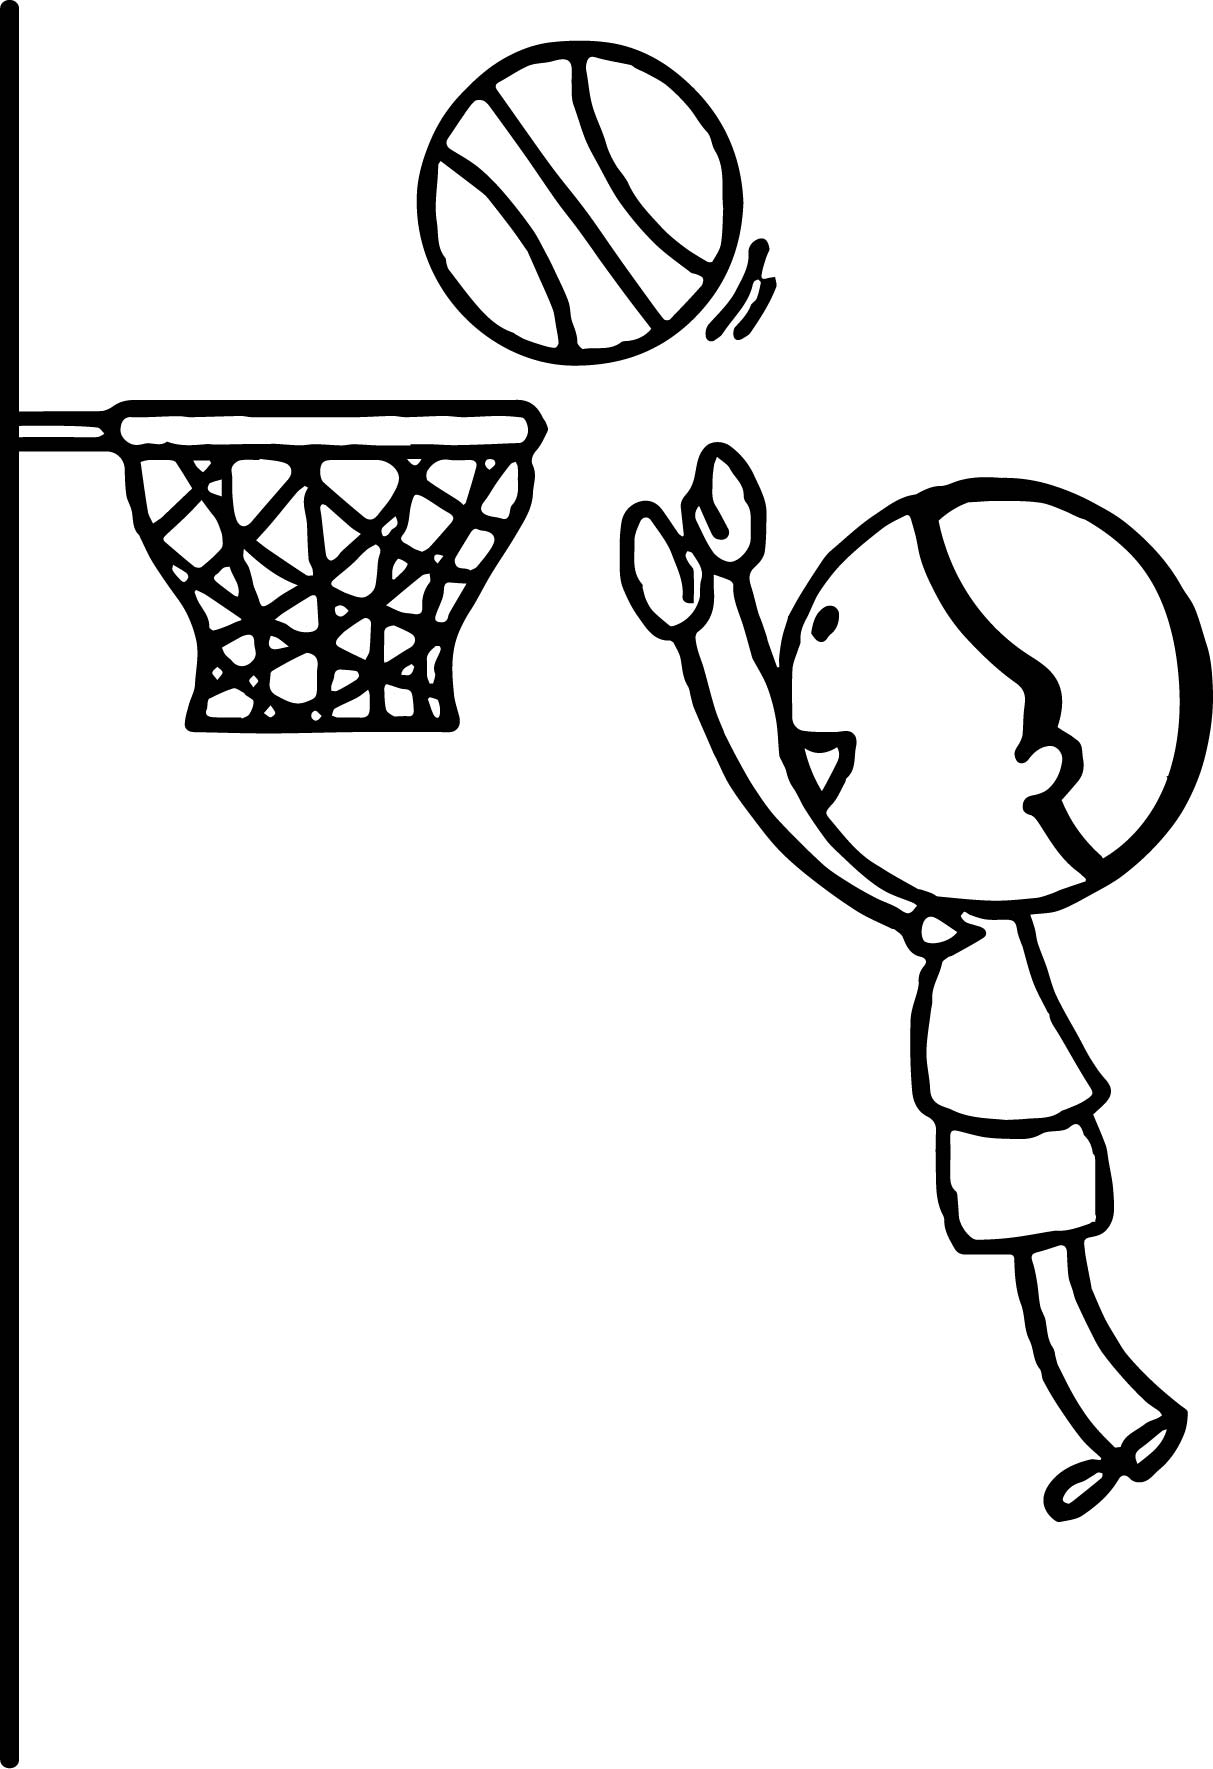 Basketball Hoop Coloring Sheet